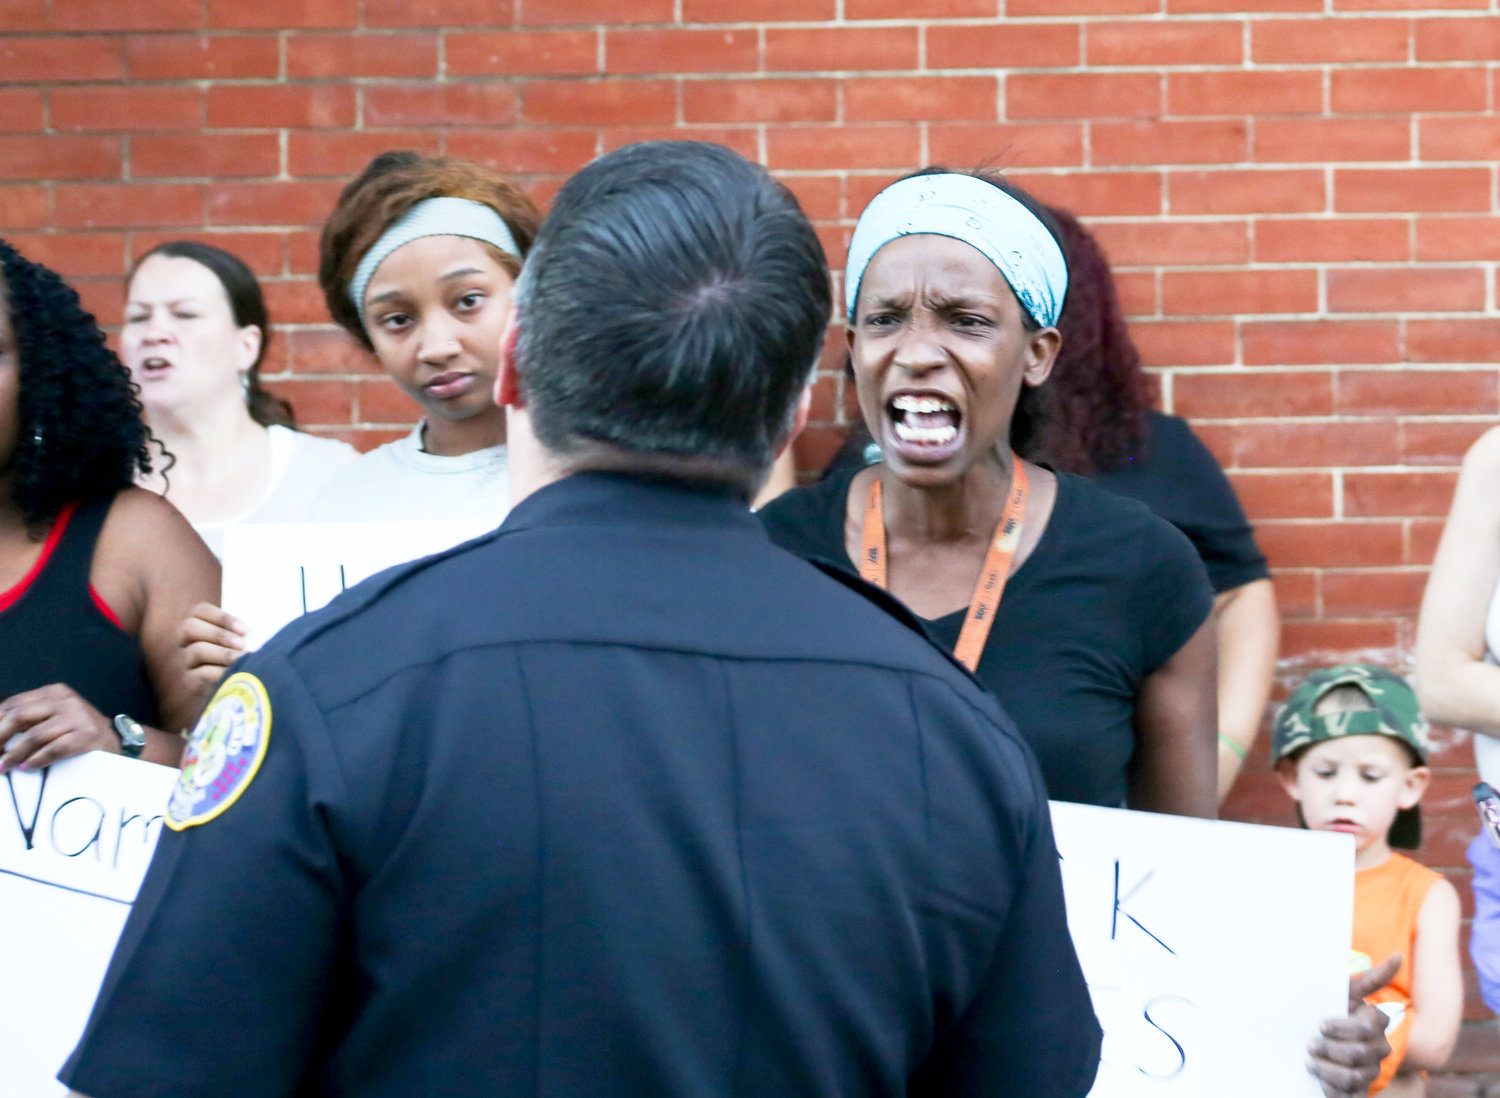 CPD POLICE CHIEF MARK GIBSON speaks to an angry protester Sunday in front of the Cleveland Police Service Center.